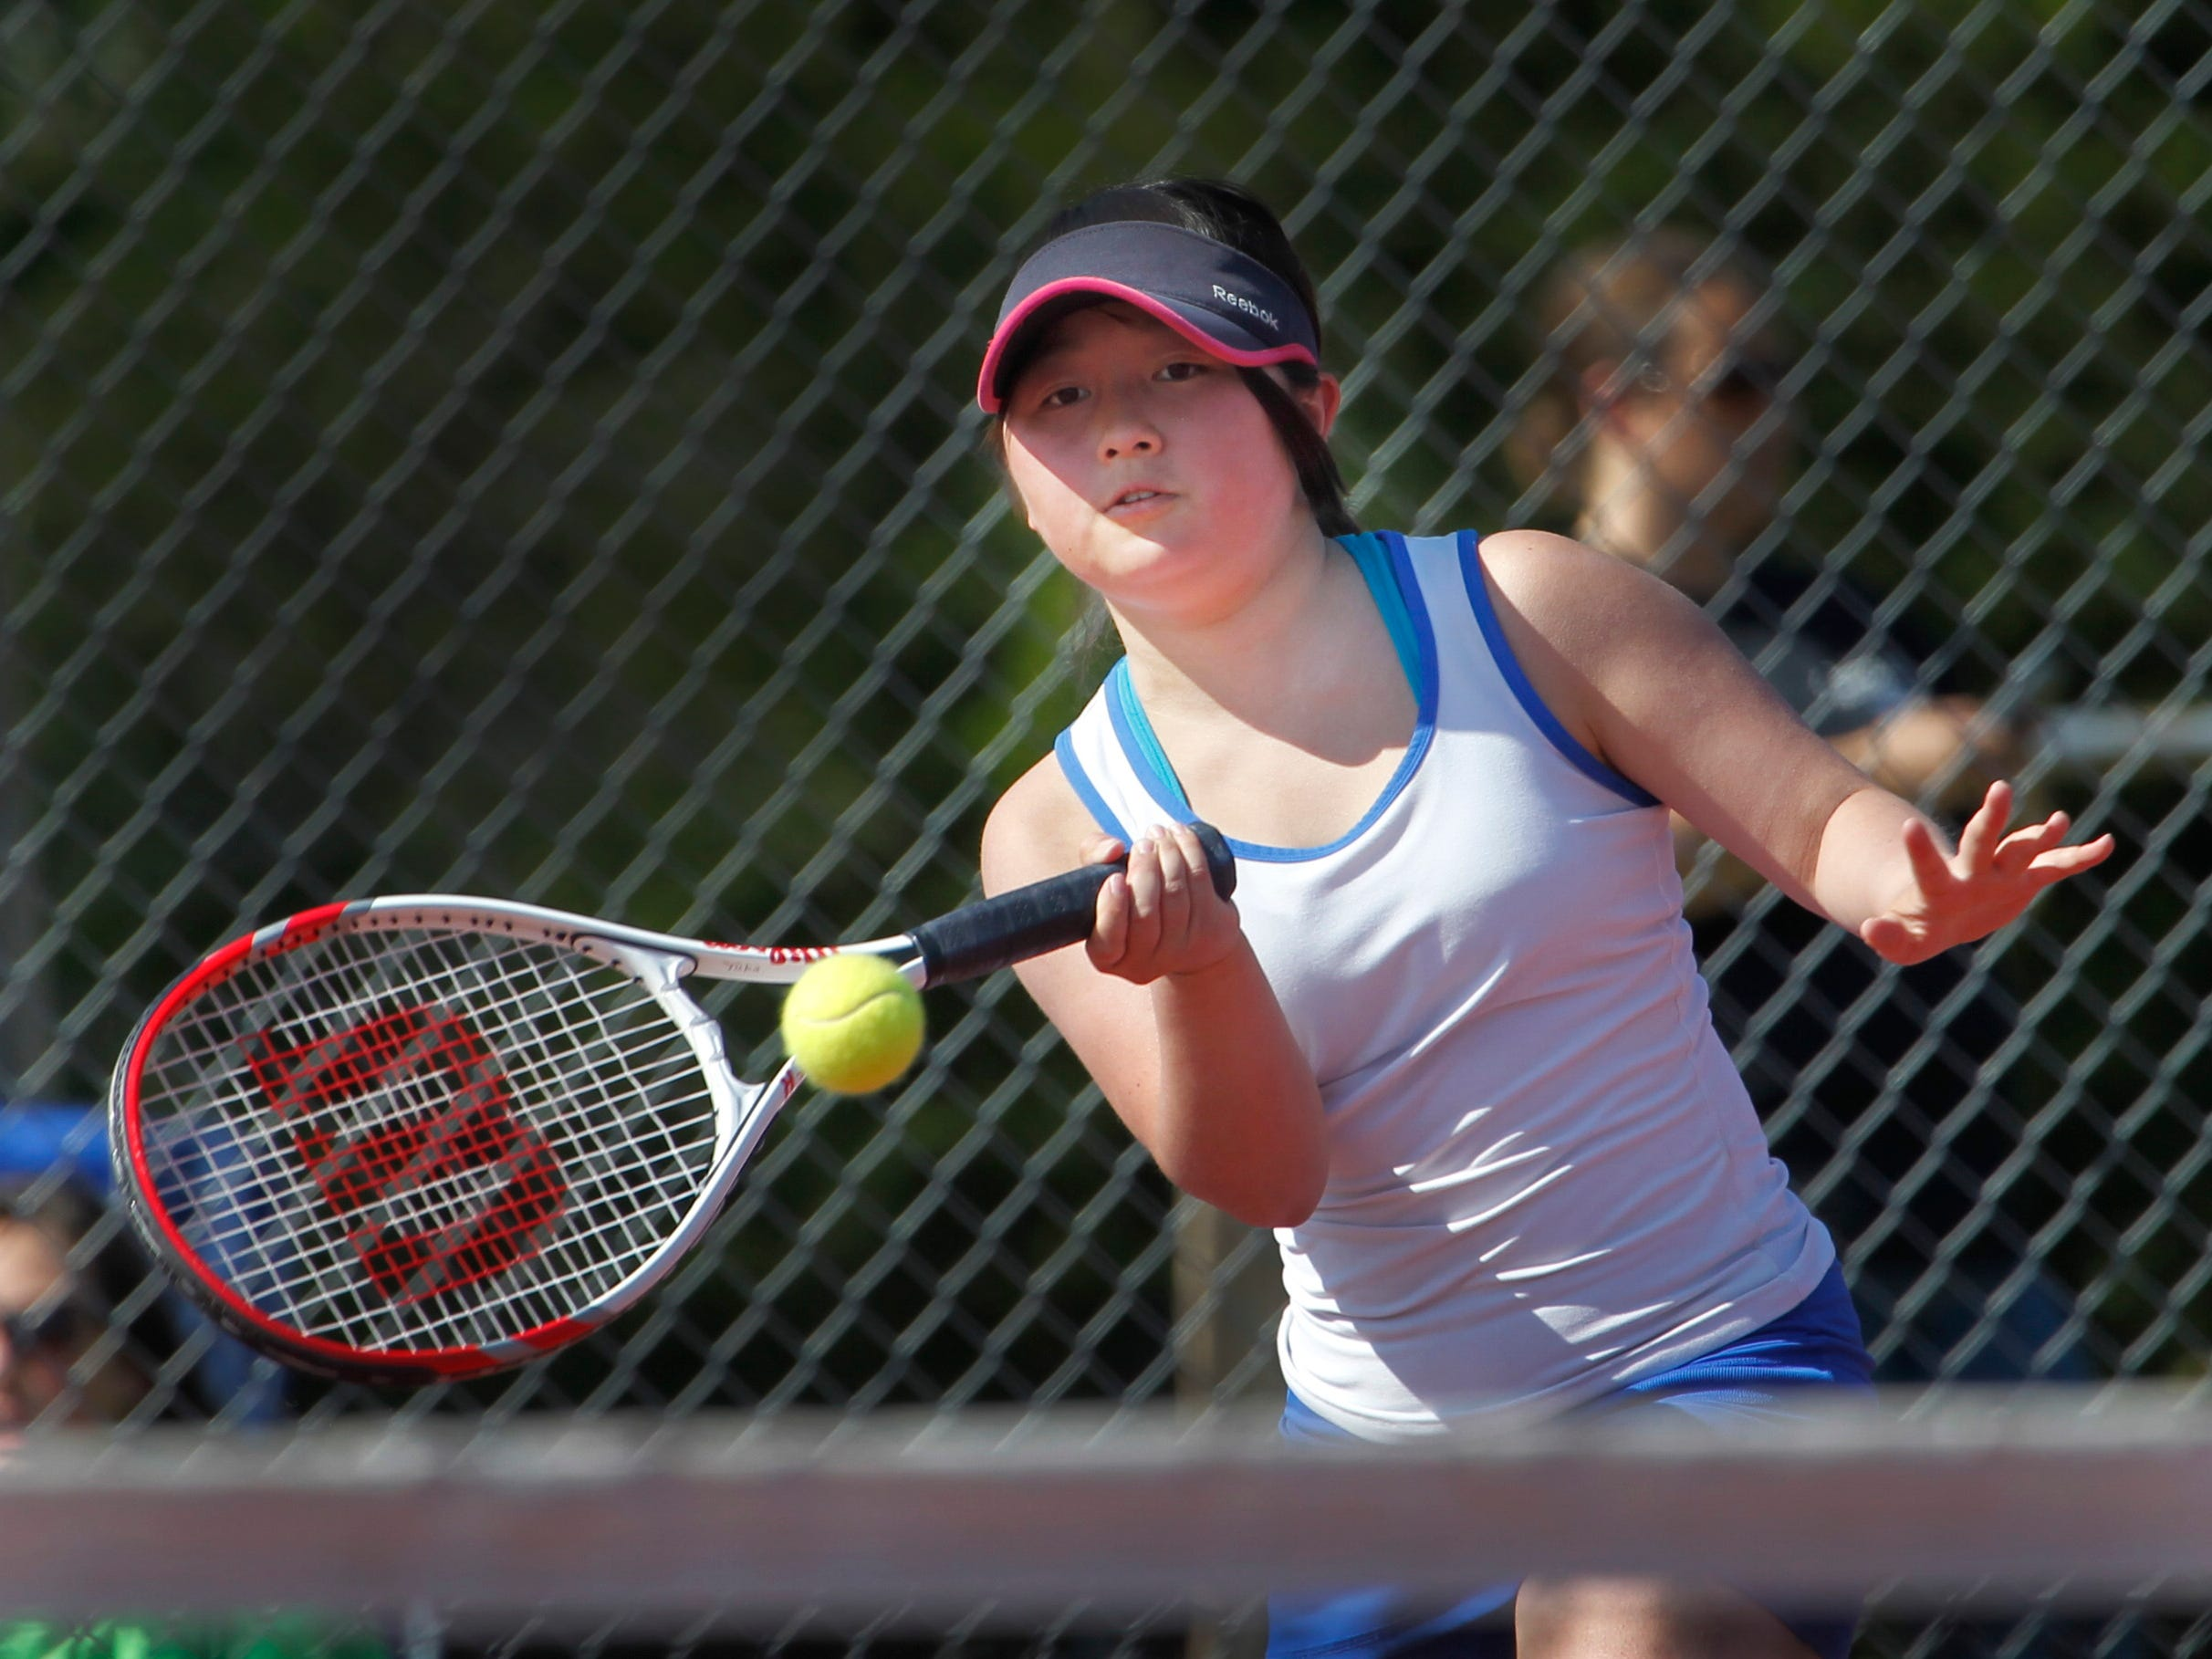 Montgomery Central's Yuka Fujiwara returns a shot against Summertown during region tournament action at Montgomery Central on Thursday. Fujiwara won her match in three sets. To see a gallery of photos go to www.theleafchronicle.com.